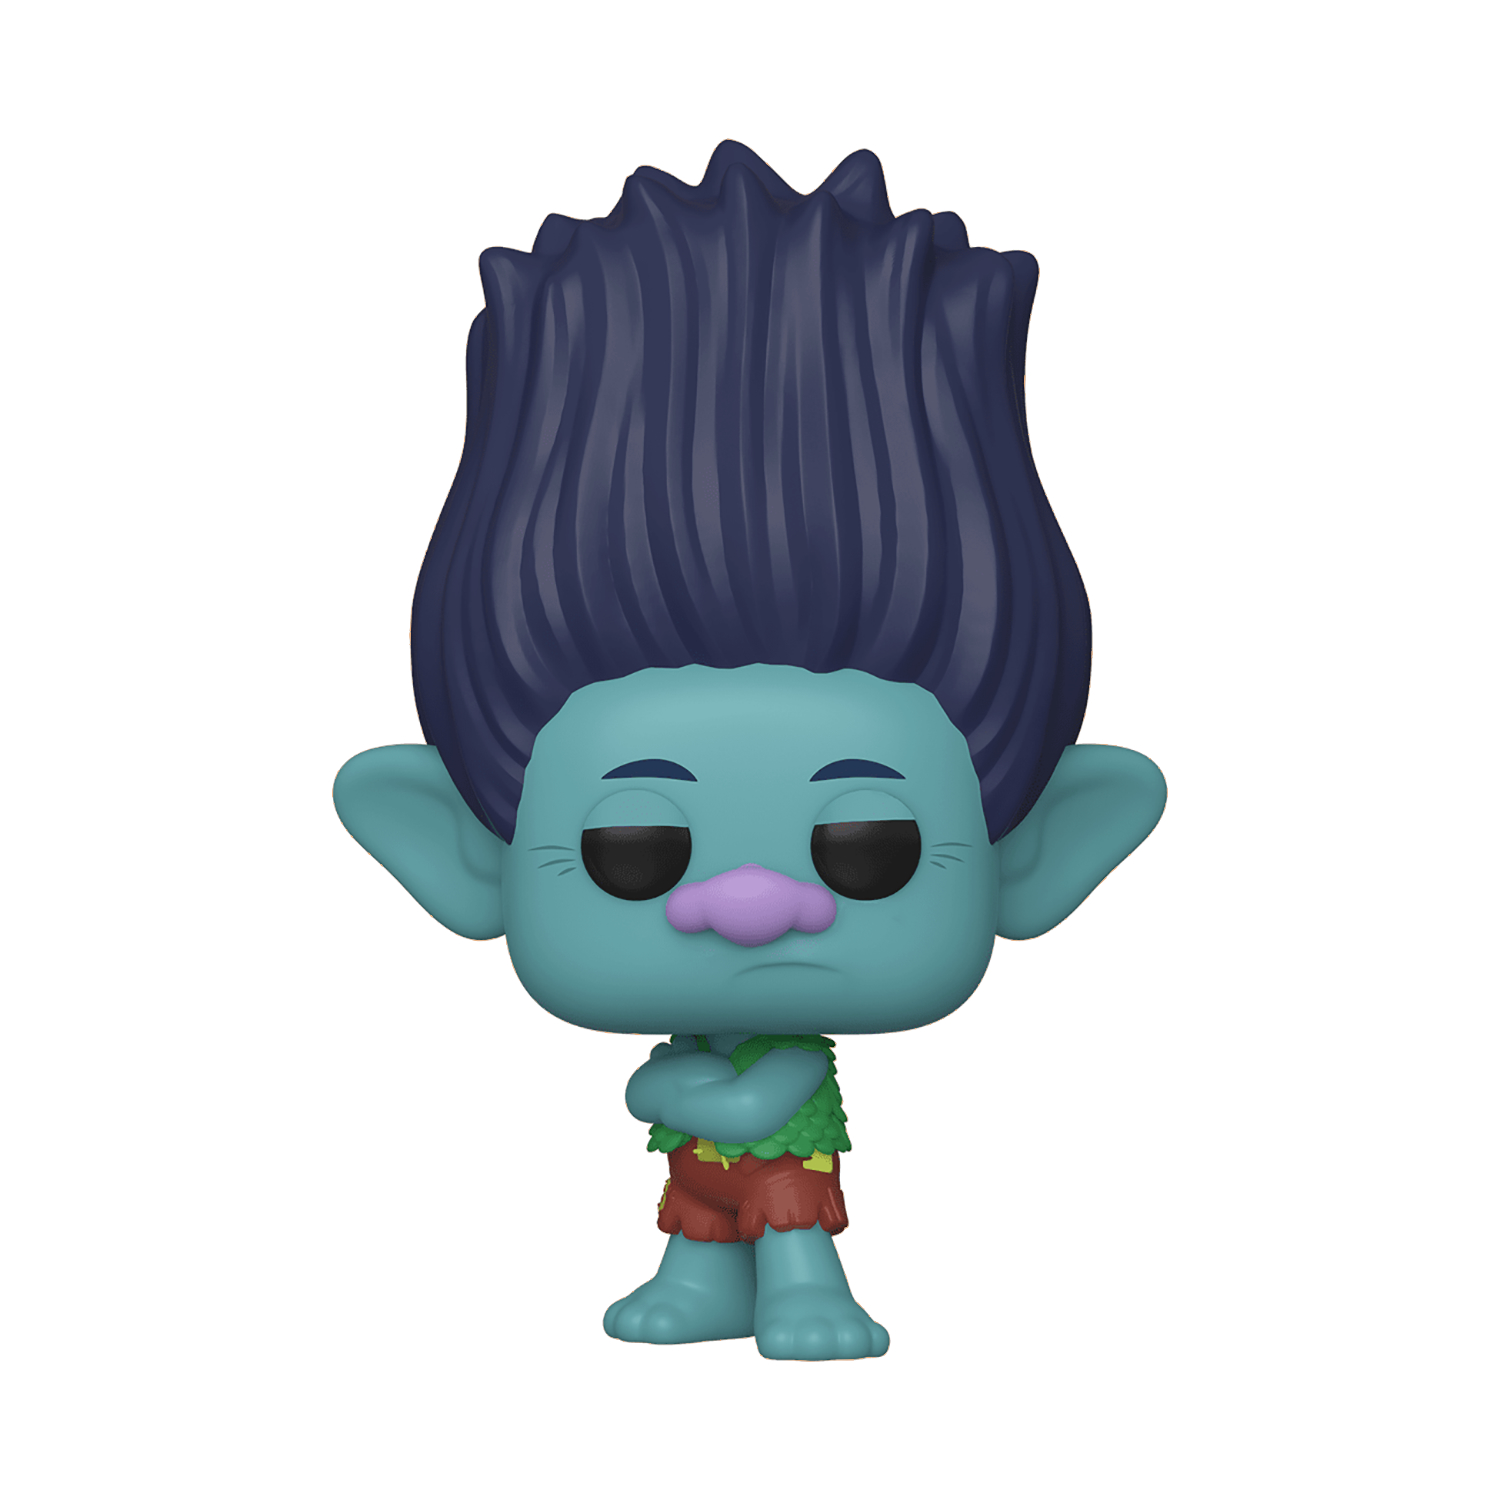 POP MOVIES TROLLS WORLD TOUR BRANCH W/ CHASE VIN FIG